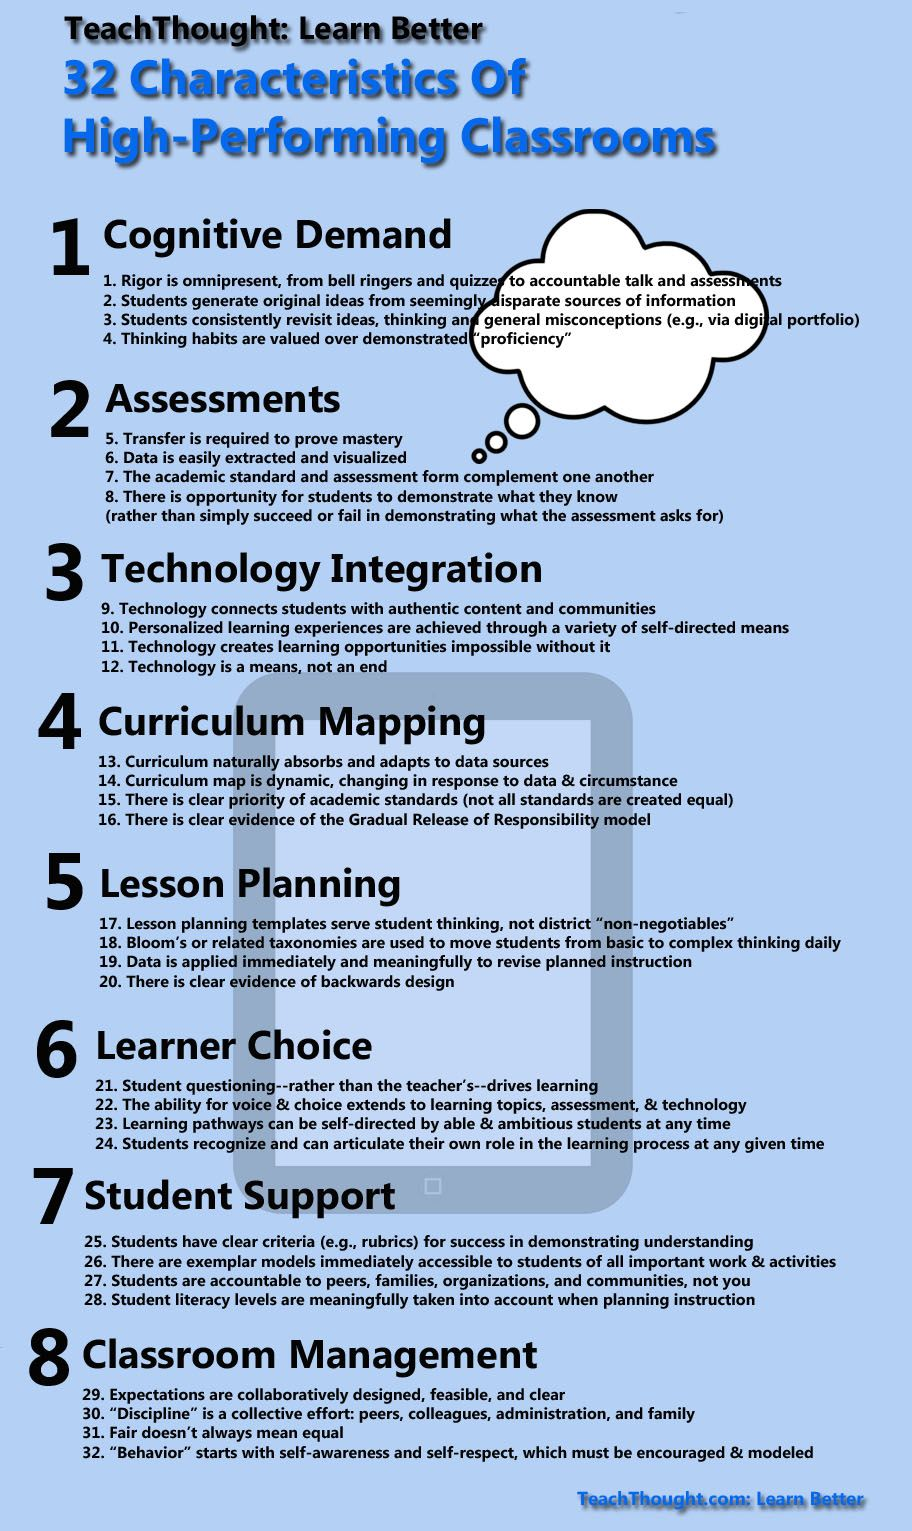 Classroom Design Lessonplanning Assessments School Stuff - Technology integration lesson plan template